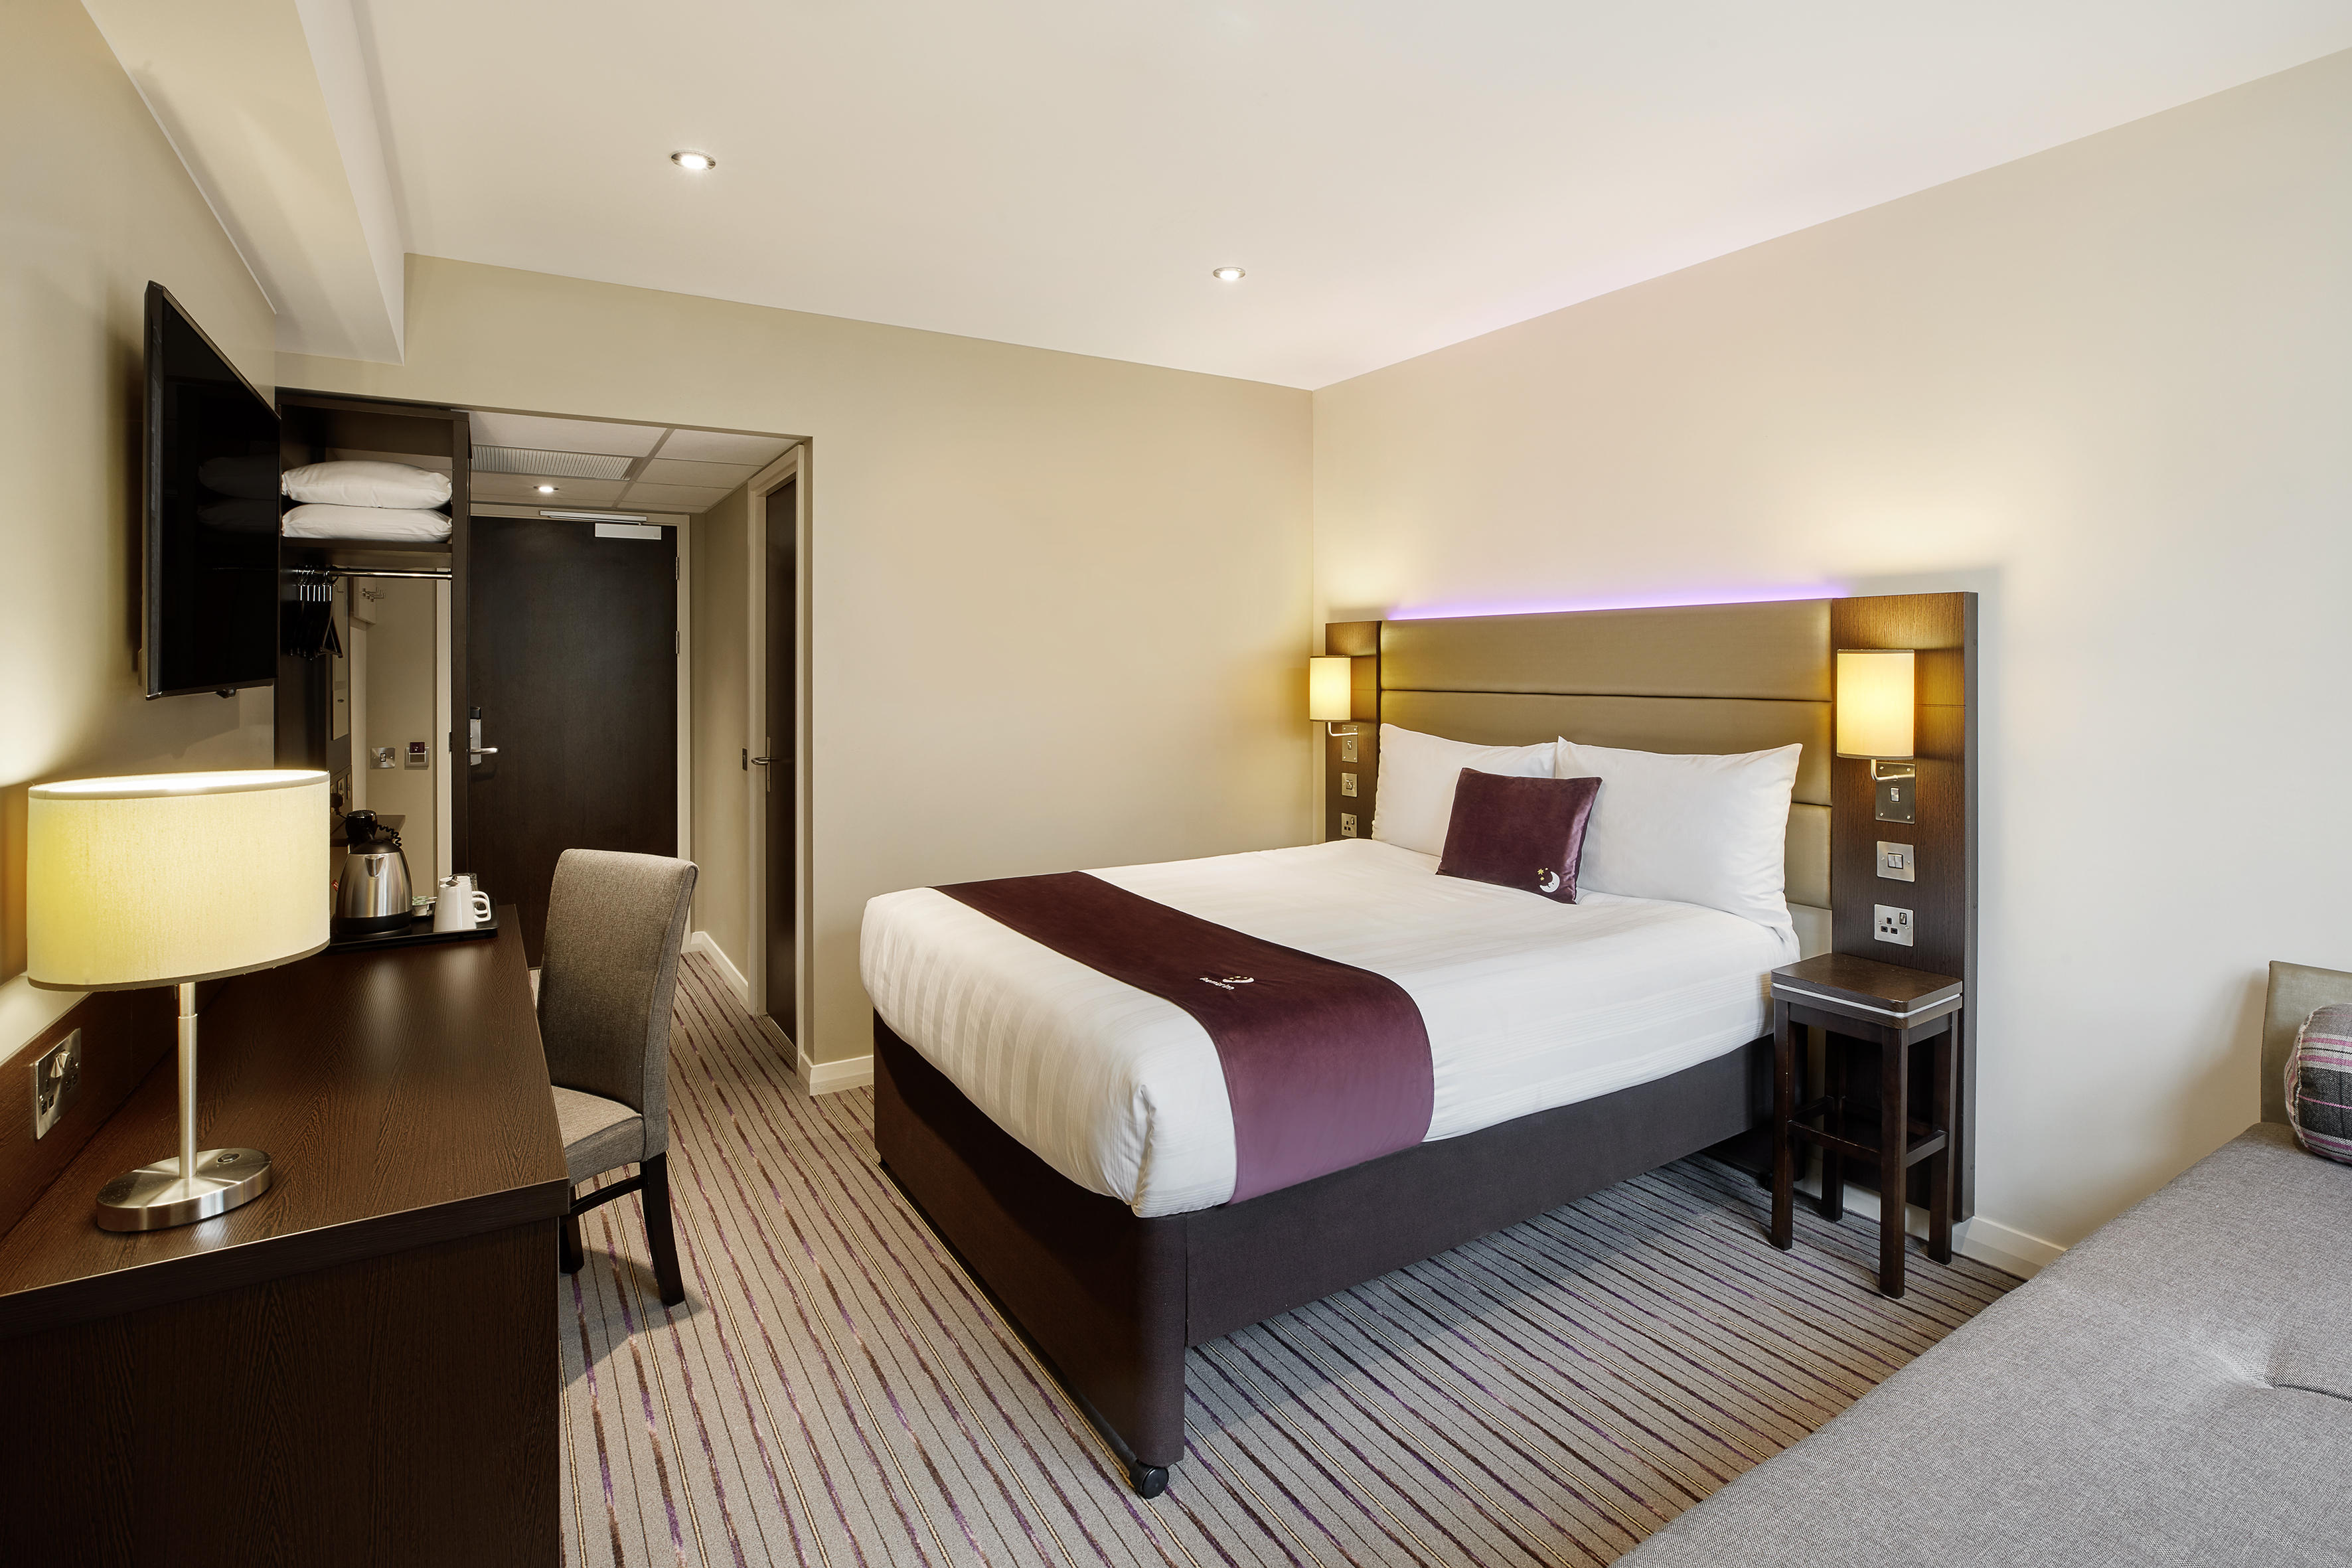 Premier Inn Premier Inn Milton Keynes South West (Furzton Lake) hotel